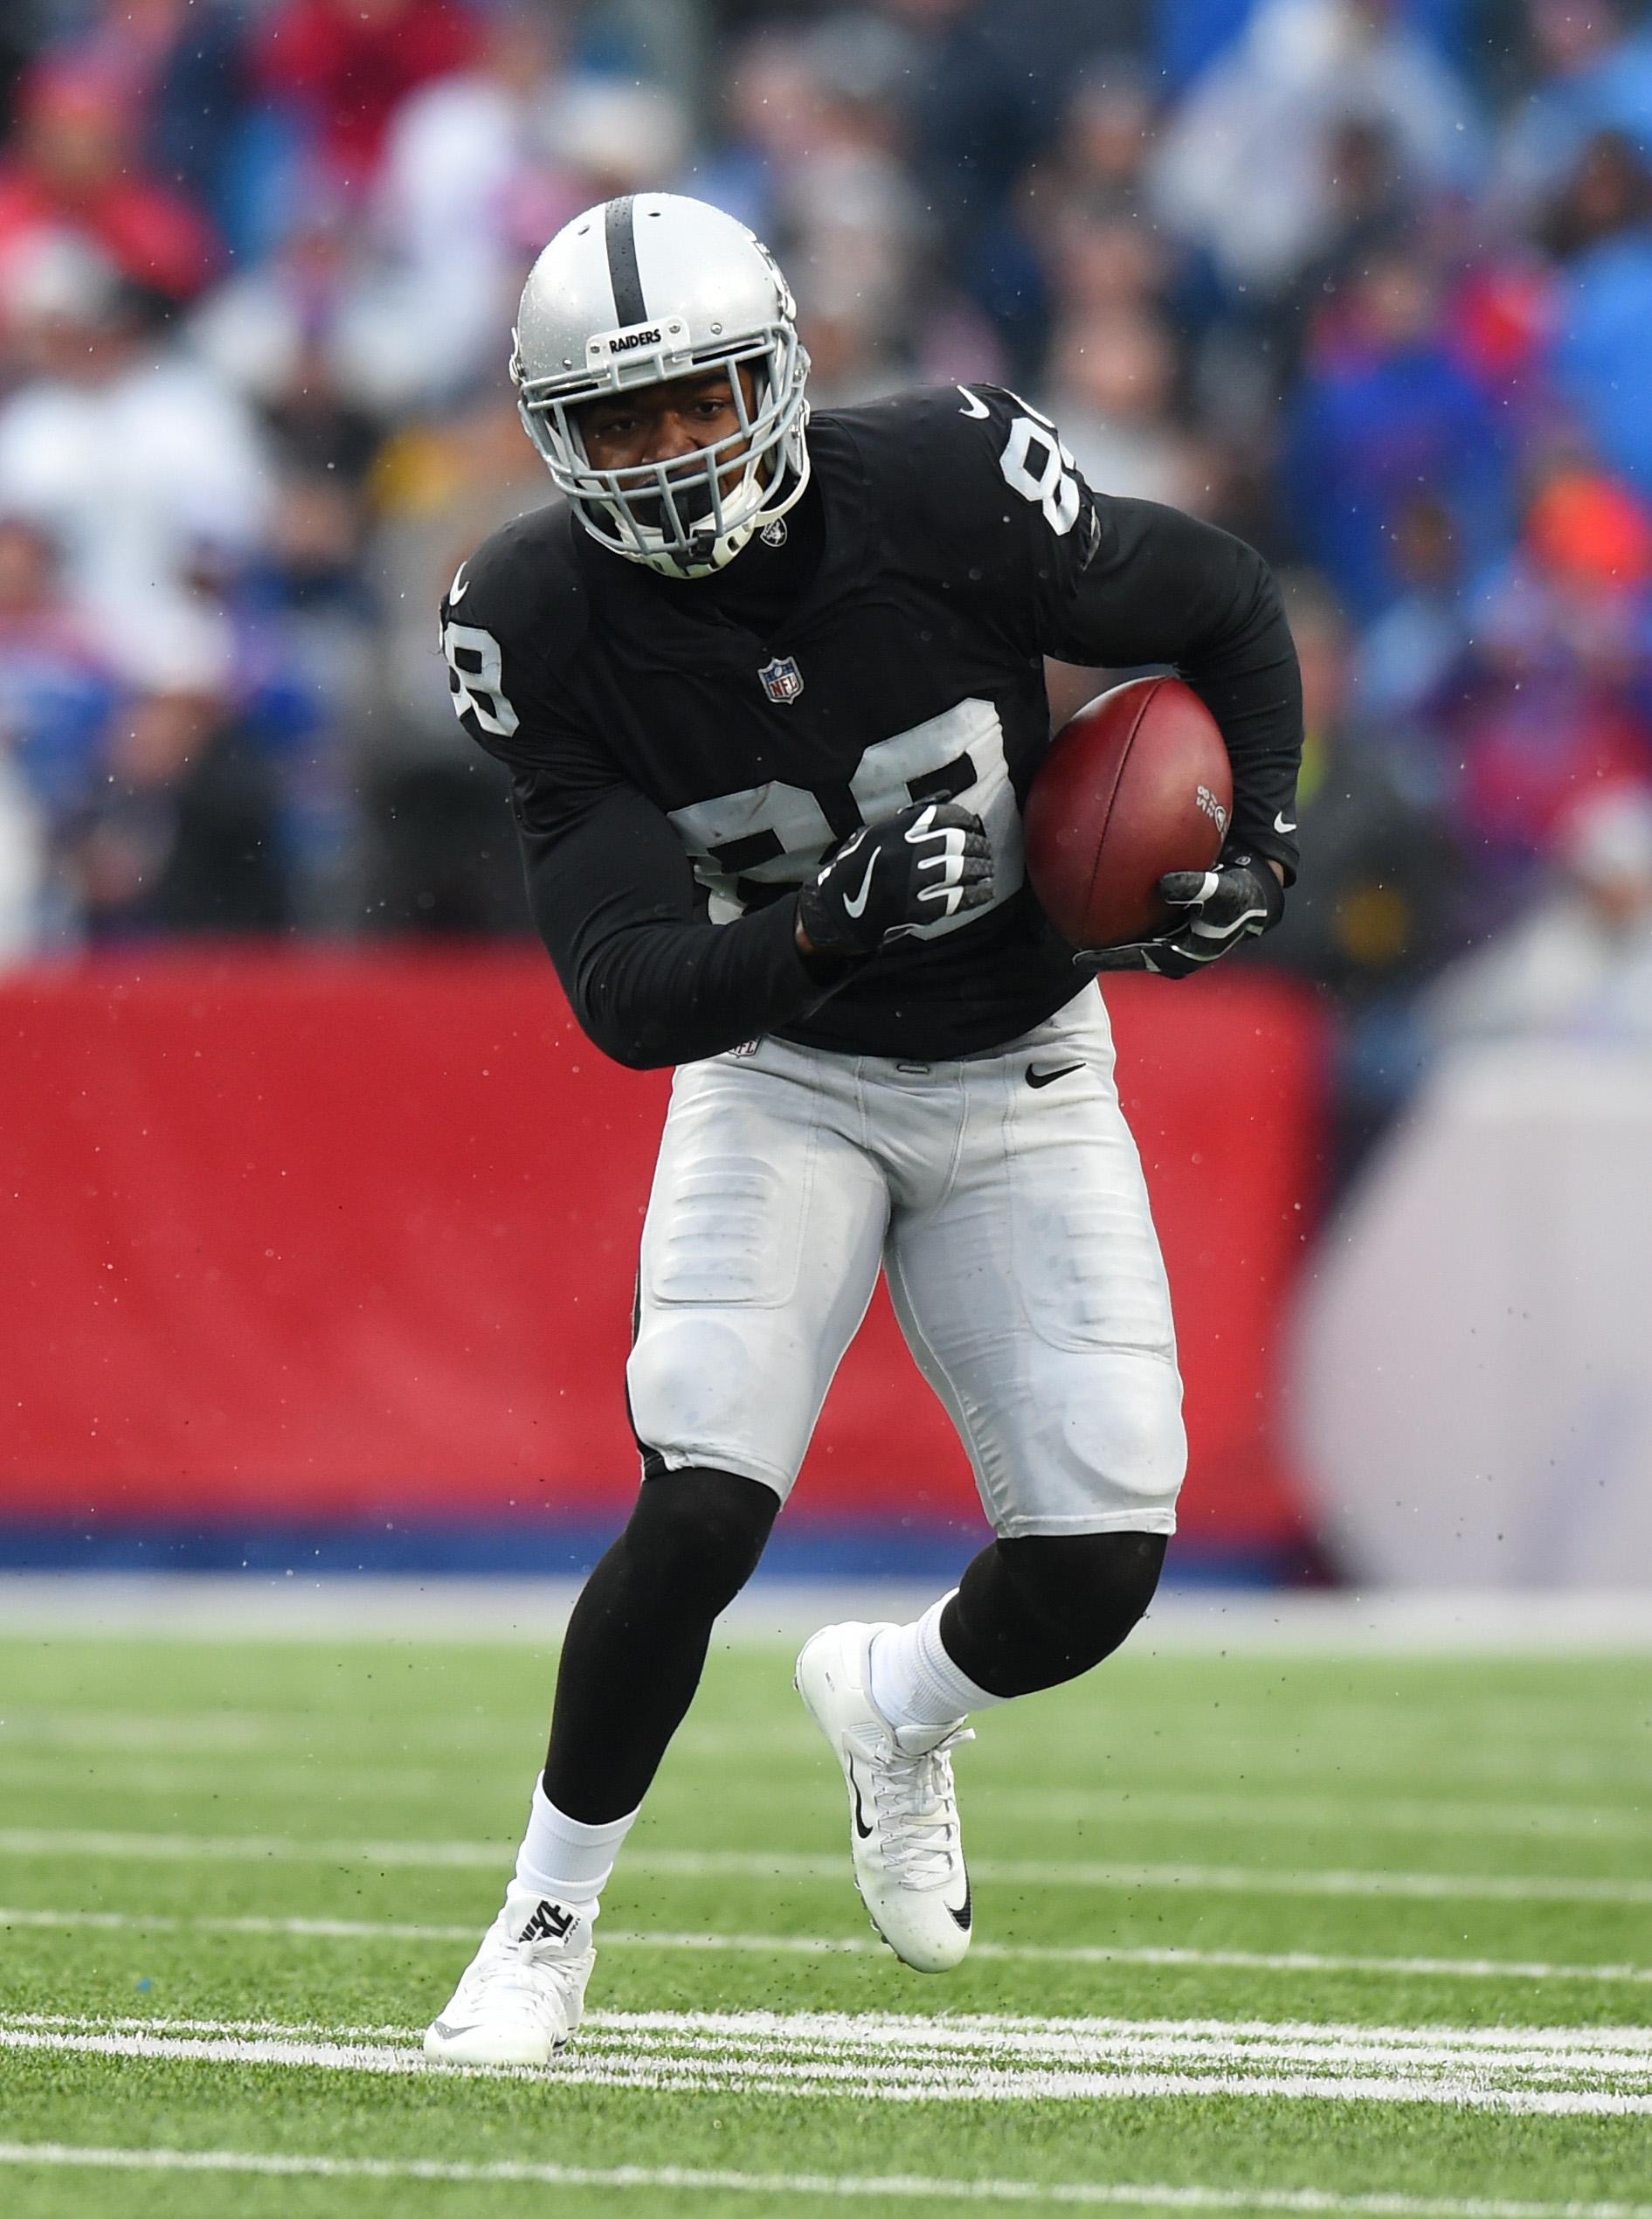 Amari Cooper ficially Ruled Out For Week 13